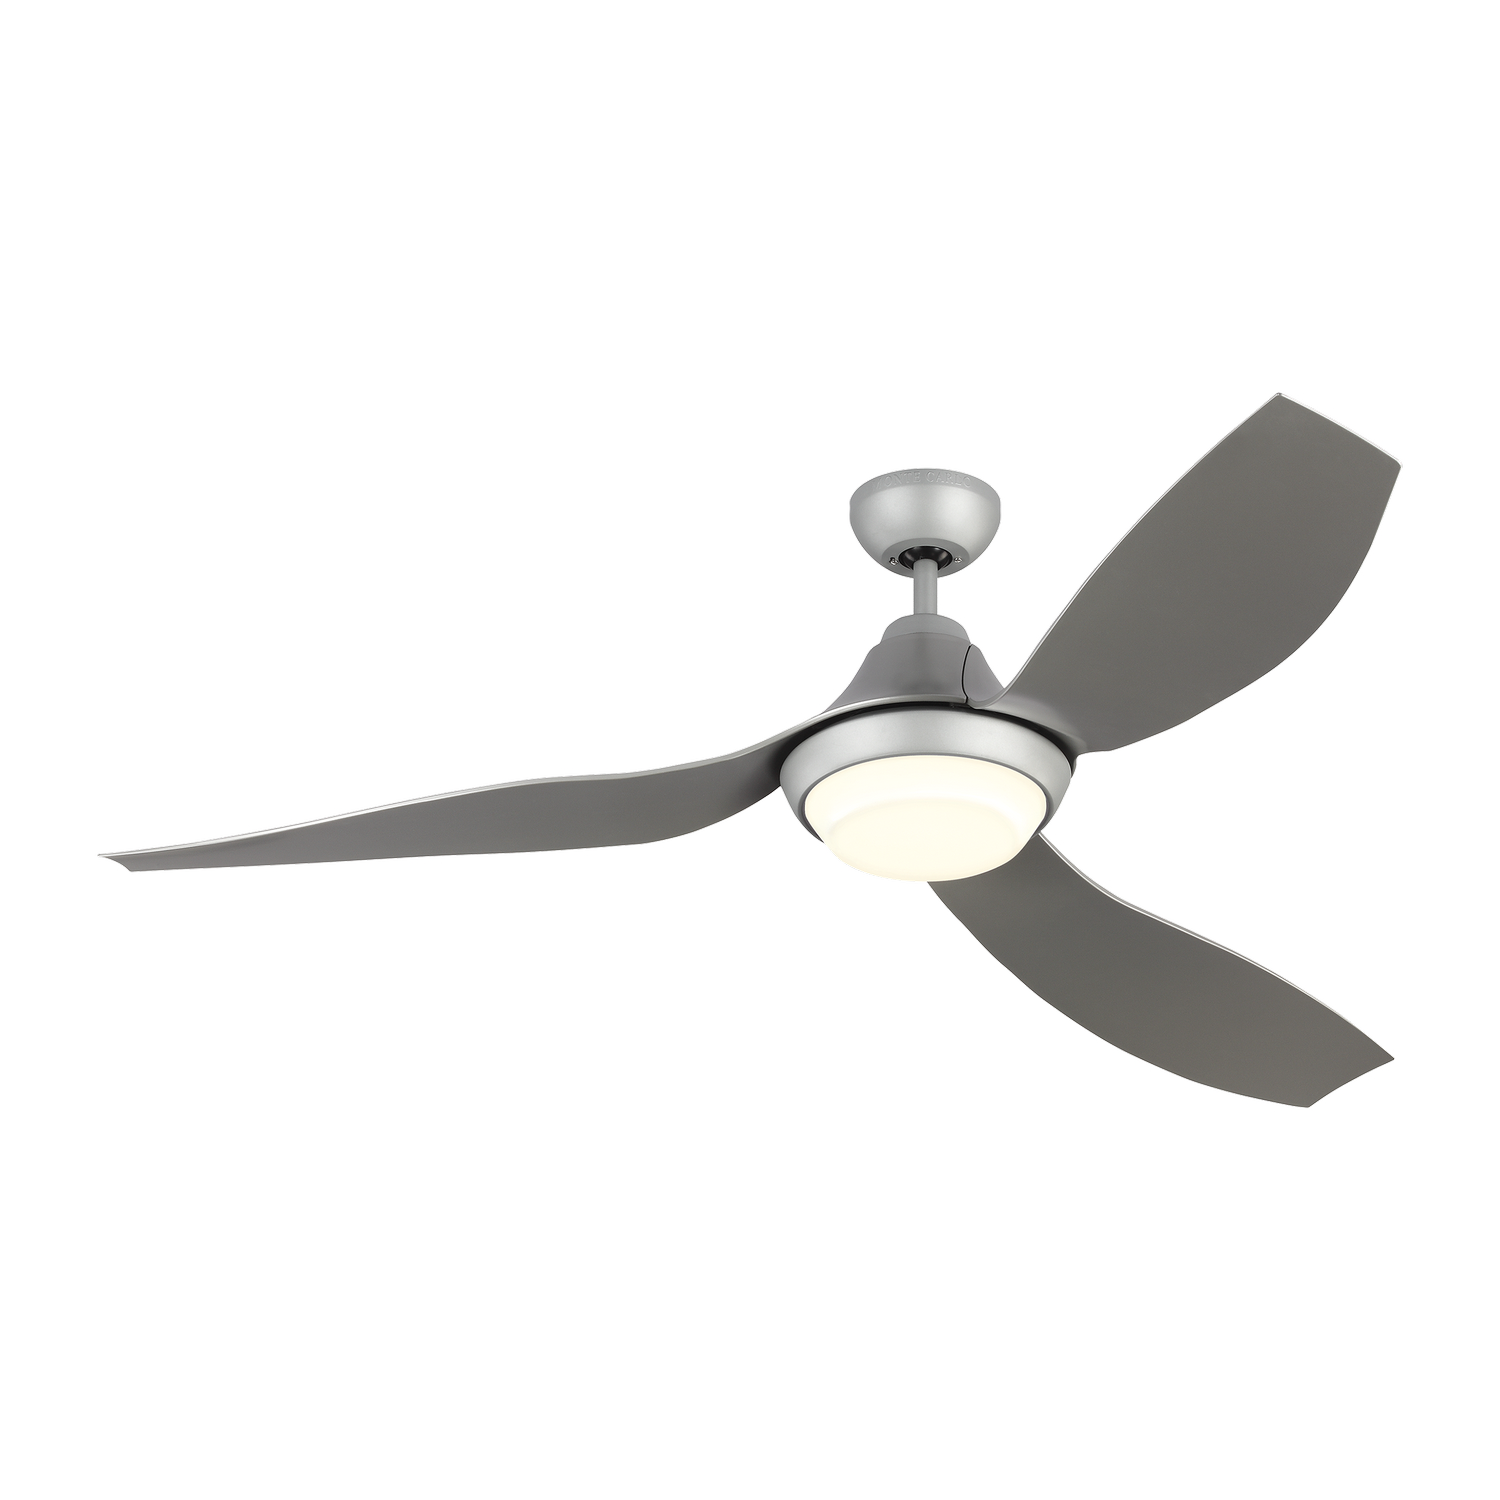 56 inchCeiling Fan from the Avvo collection by Monte Carlo 3AVOR56GRYD V1